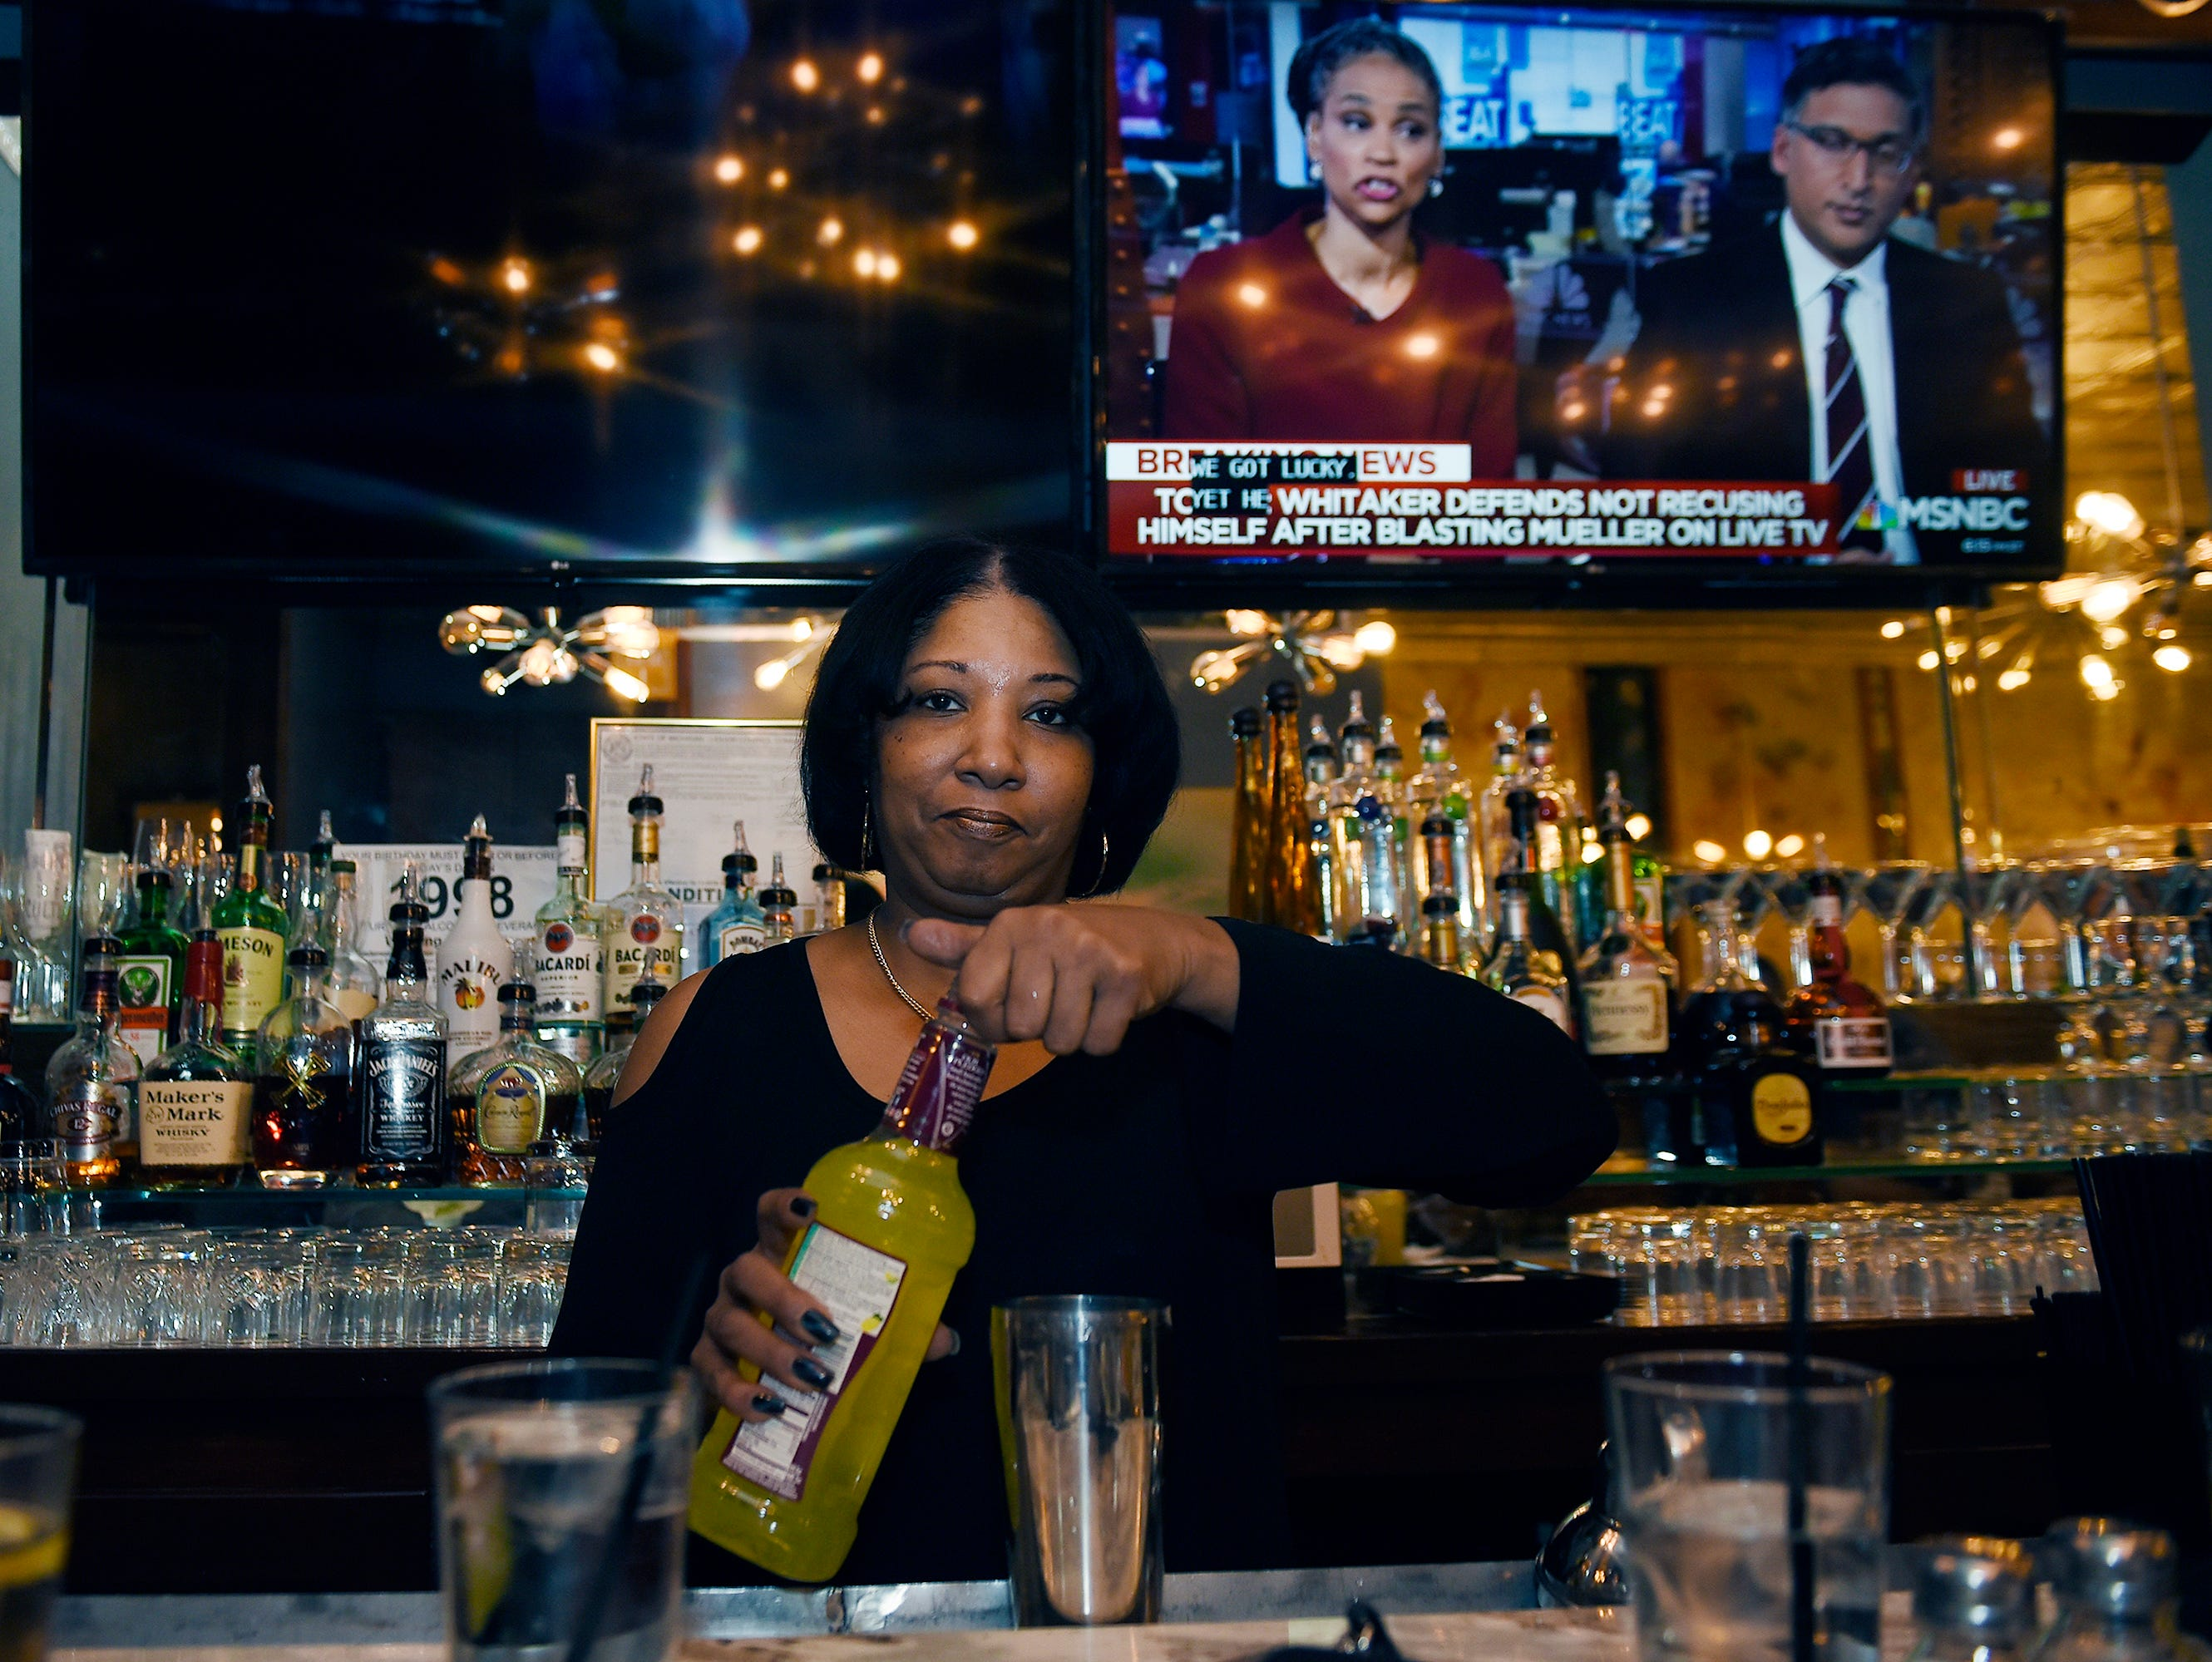 Mechelle Young, bartender, prepares a drink.